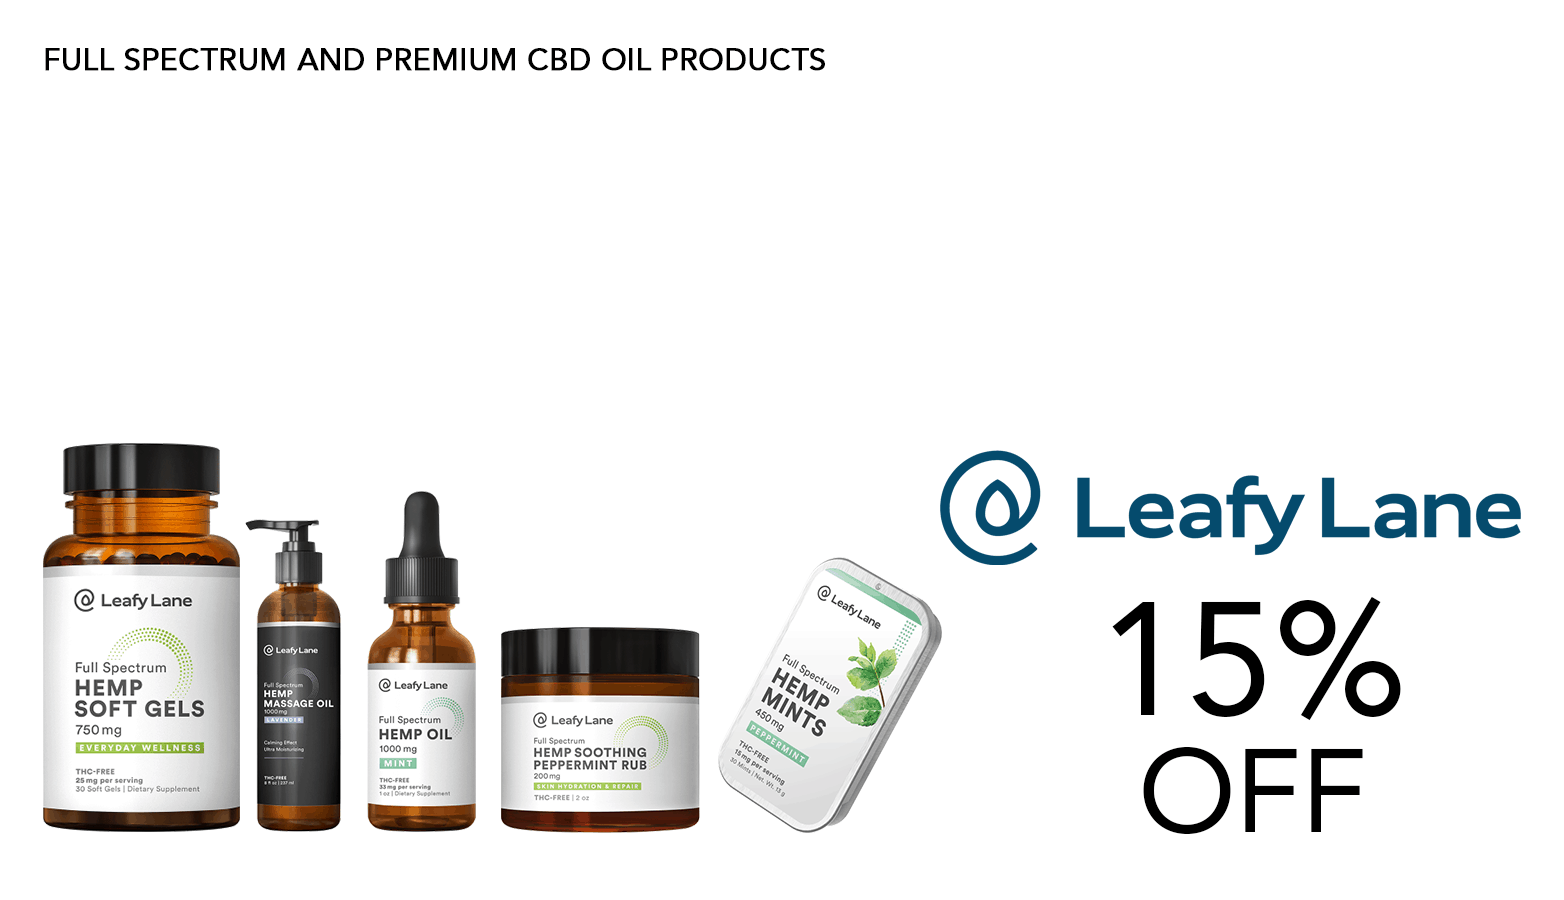 Leafy Lane CBD Coupon Code Offer Promo